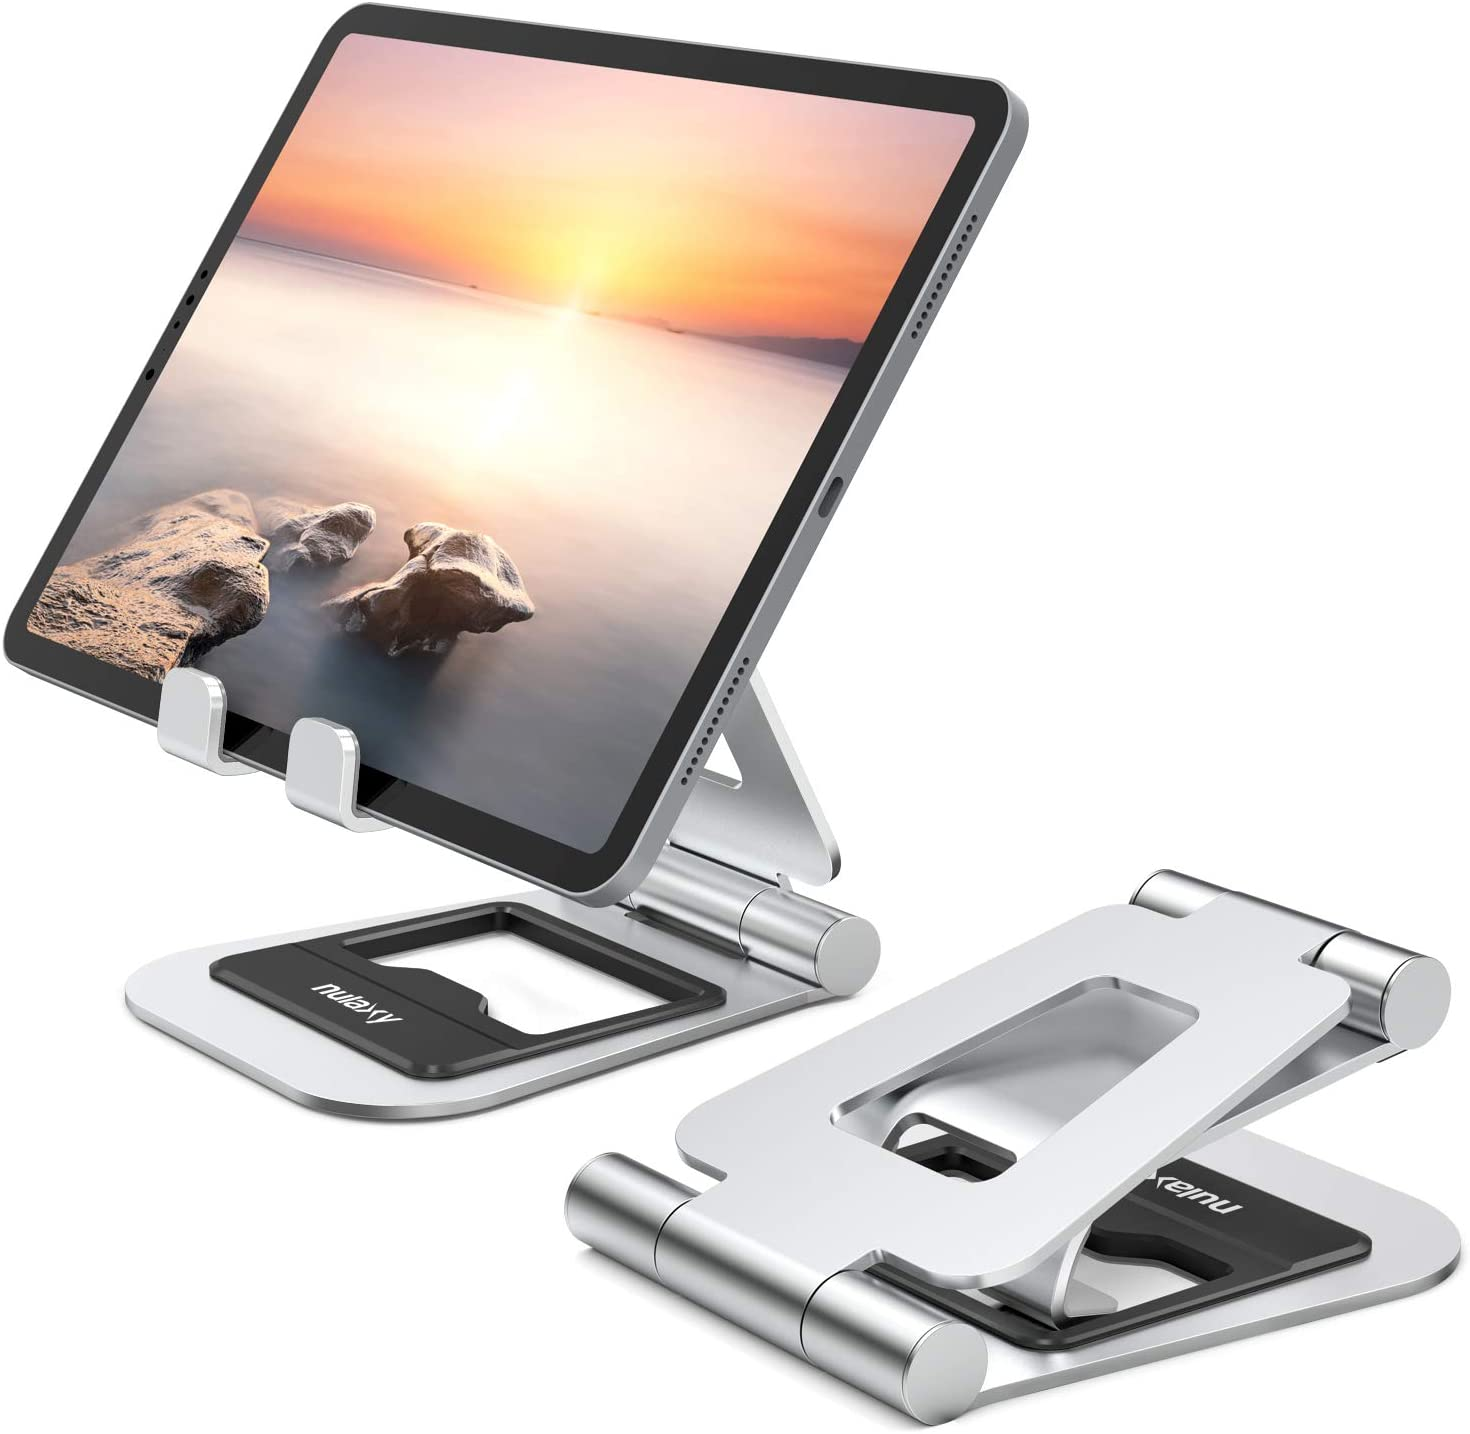 Nulaxy A5 Tablet Stand, Fully Foldable Tablet Holder Stand Compatible with iPad Pro 12.9,10.5, 9.7, Air Mini 4 3 2, iPhone 11 pro Xs Max Xr X, Kindle, Nexus, Tab, E-Reader (4.7-13'')-Silver